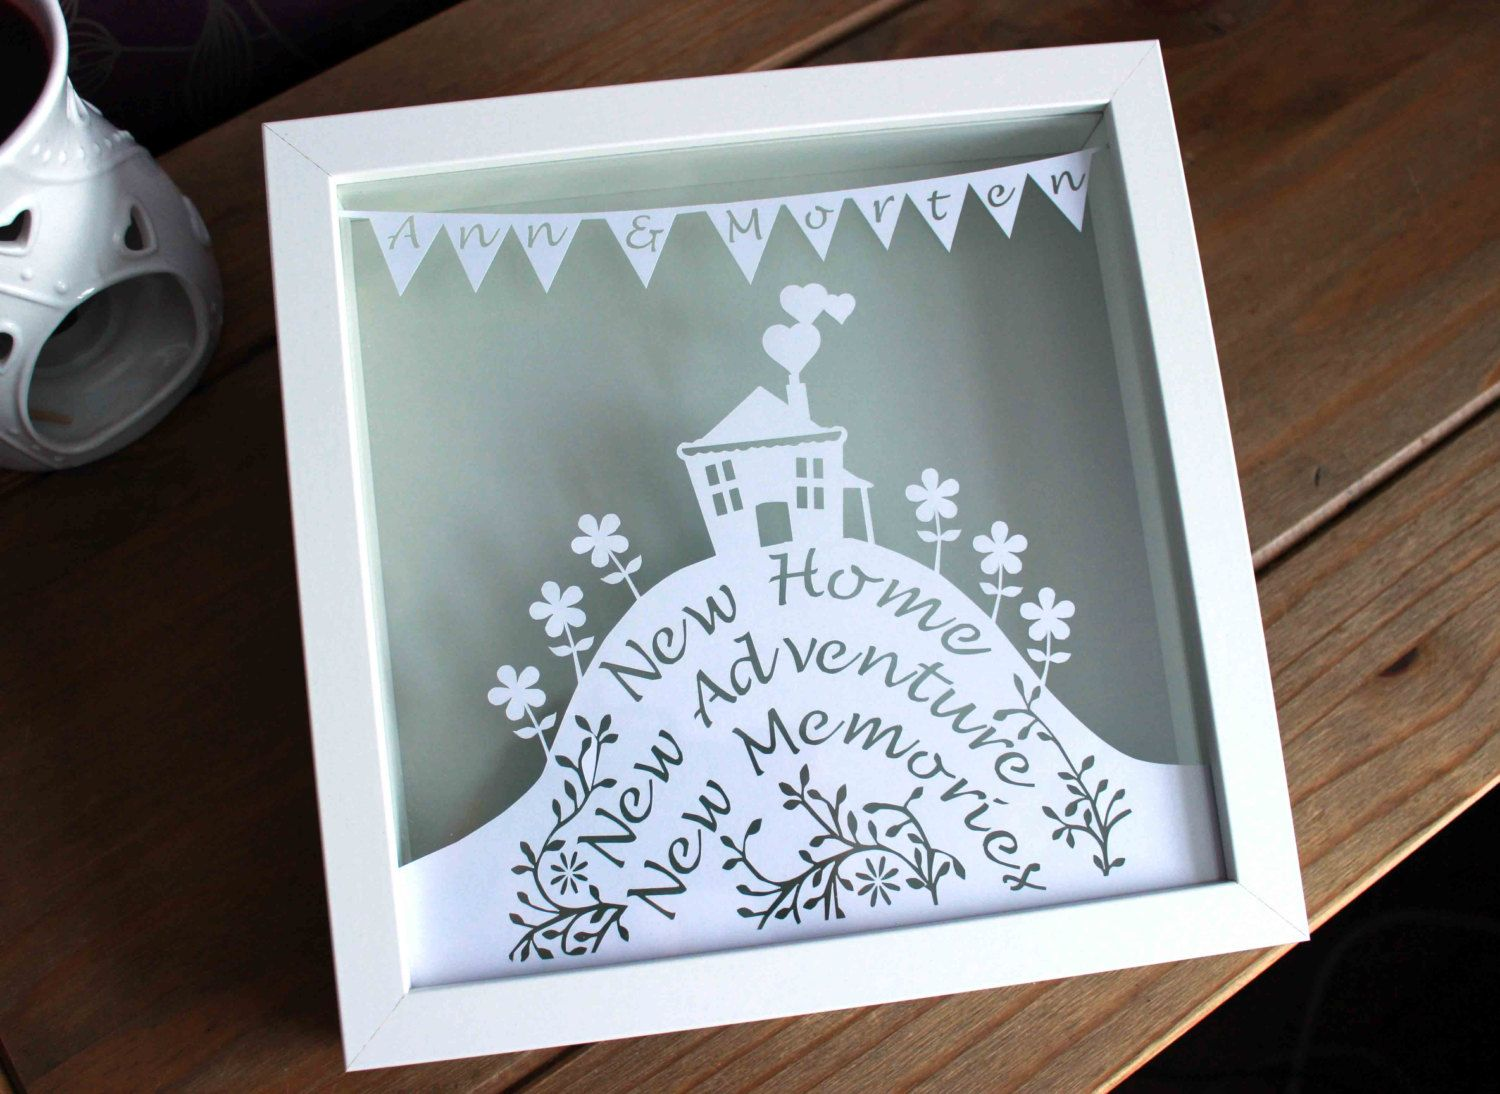 Handmade personalised new home papercut in a white stylish box handmade personalised new home papercut in a white stylish box frame by edwardsscissorhands on etsy negle Choice Image